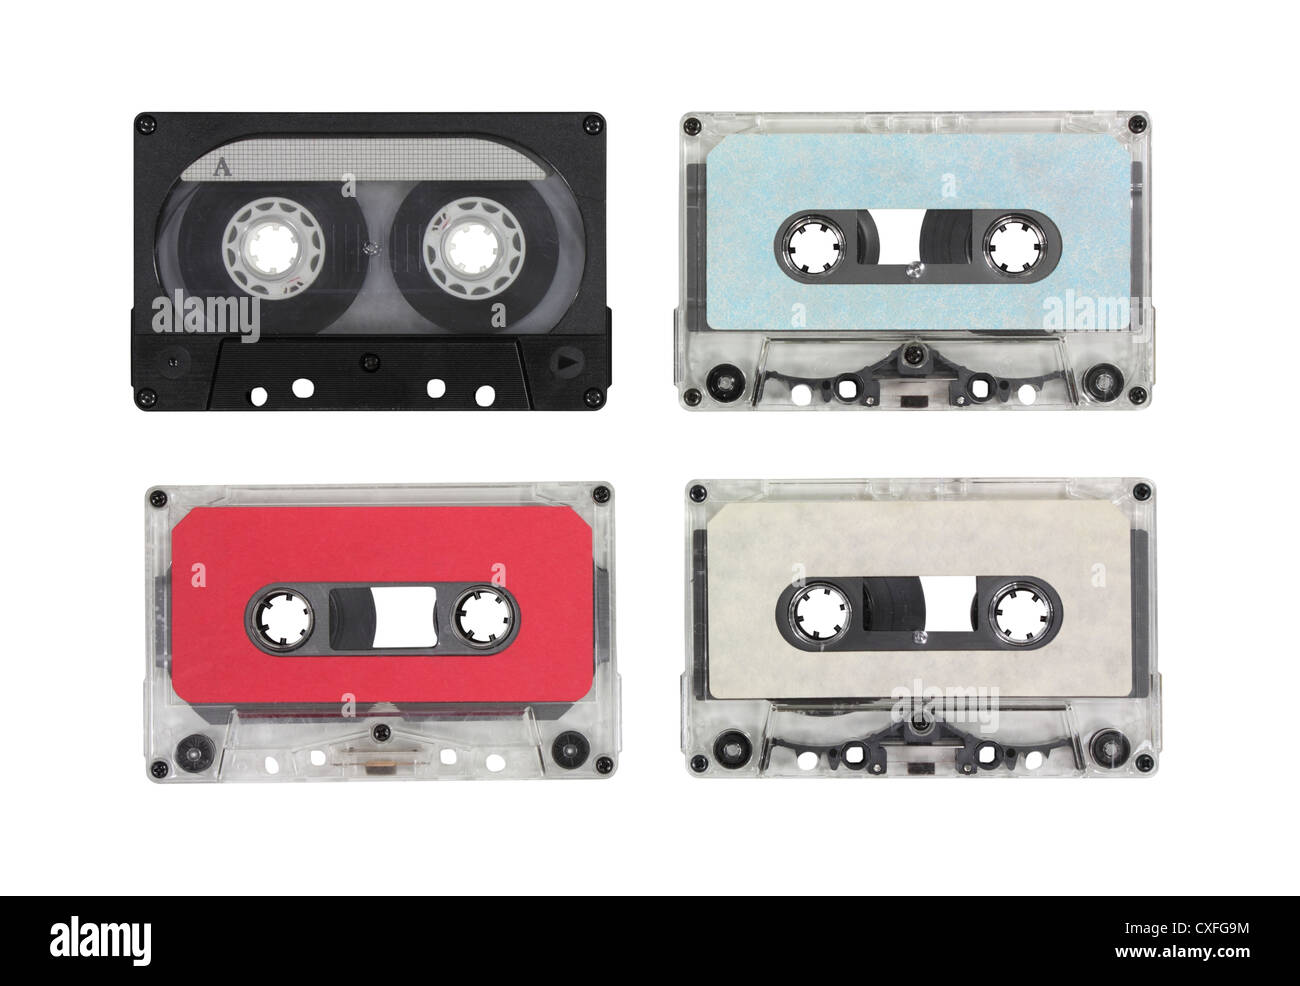 Vintage blank audio cassettes with clipping path. - Stock Image